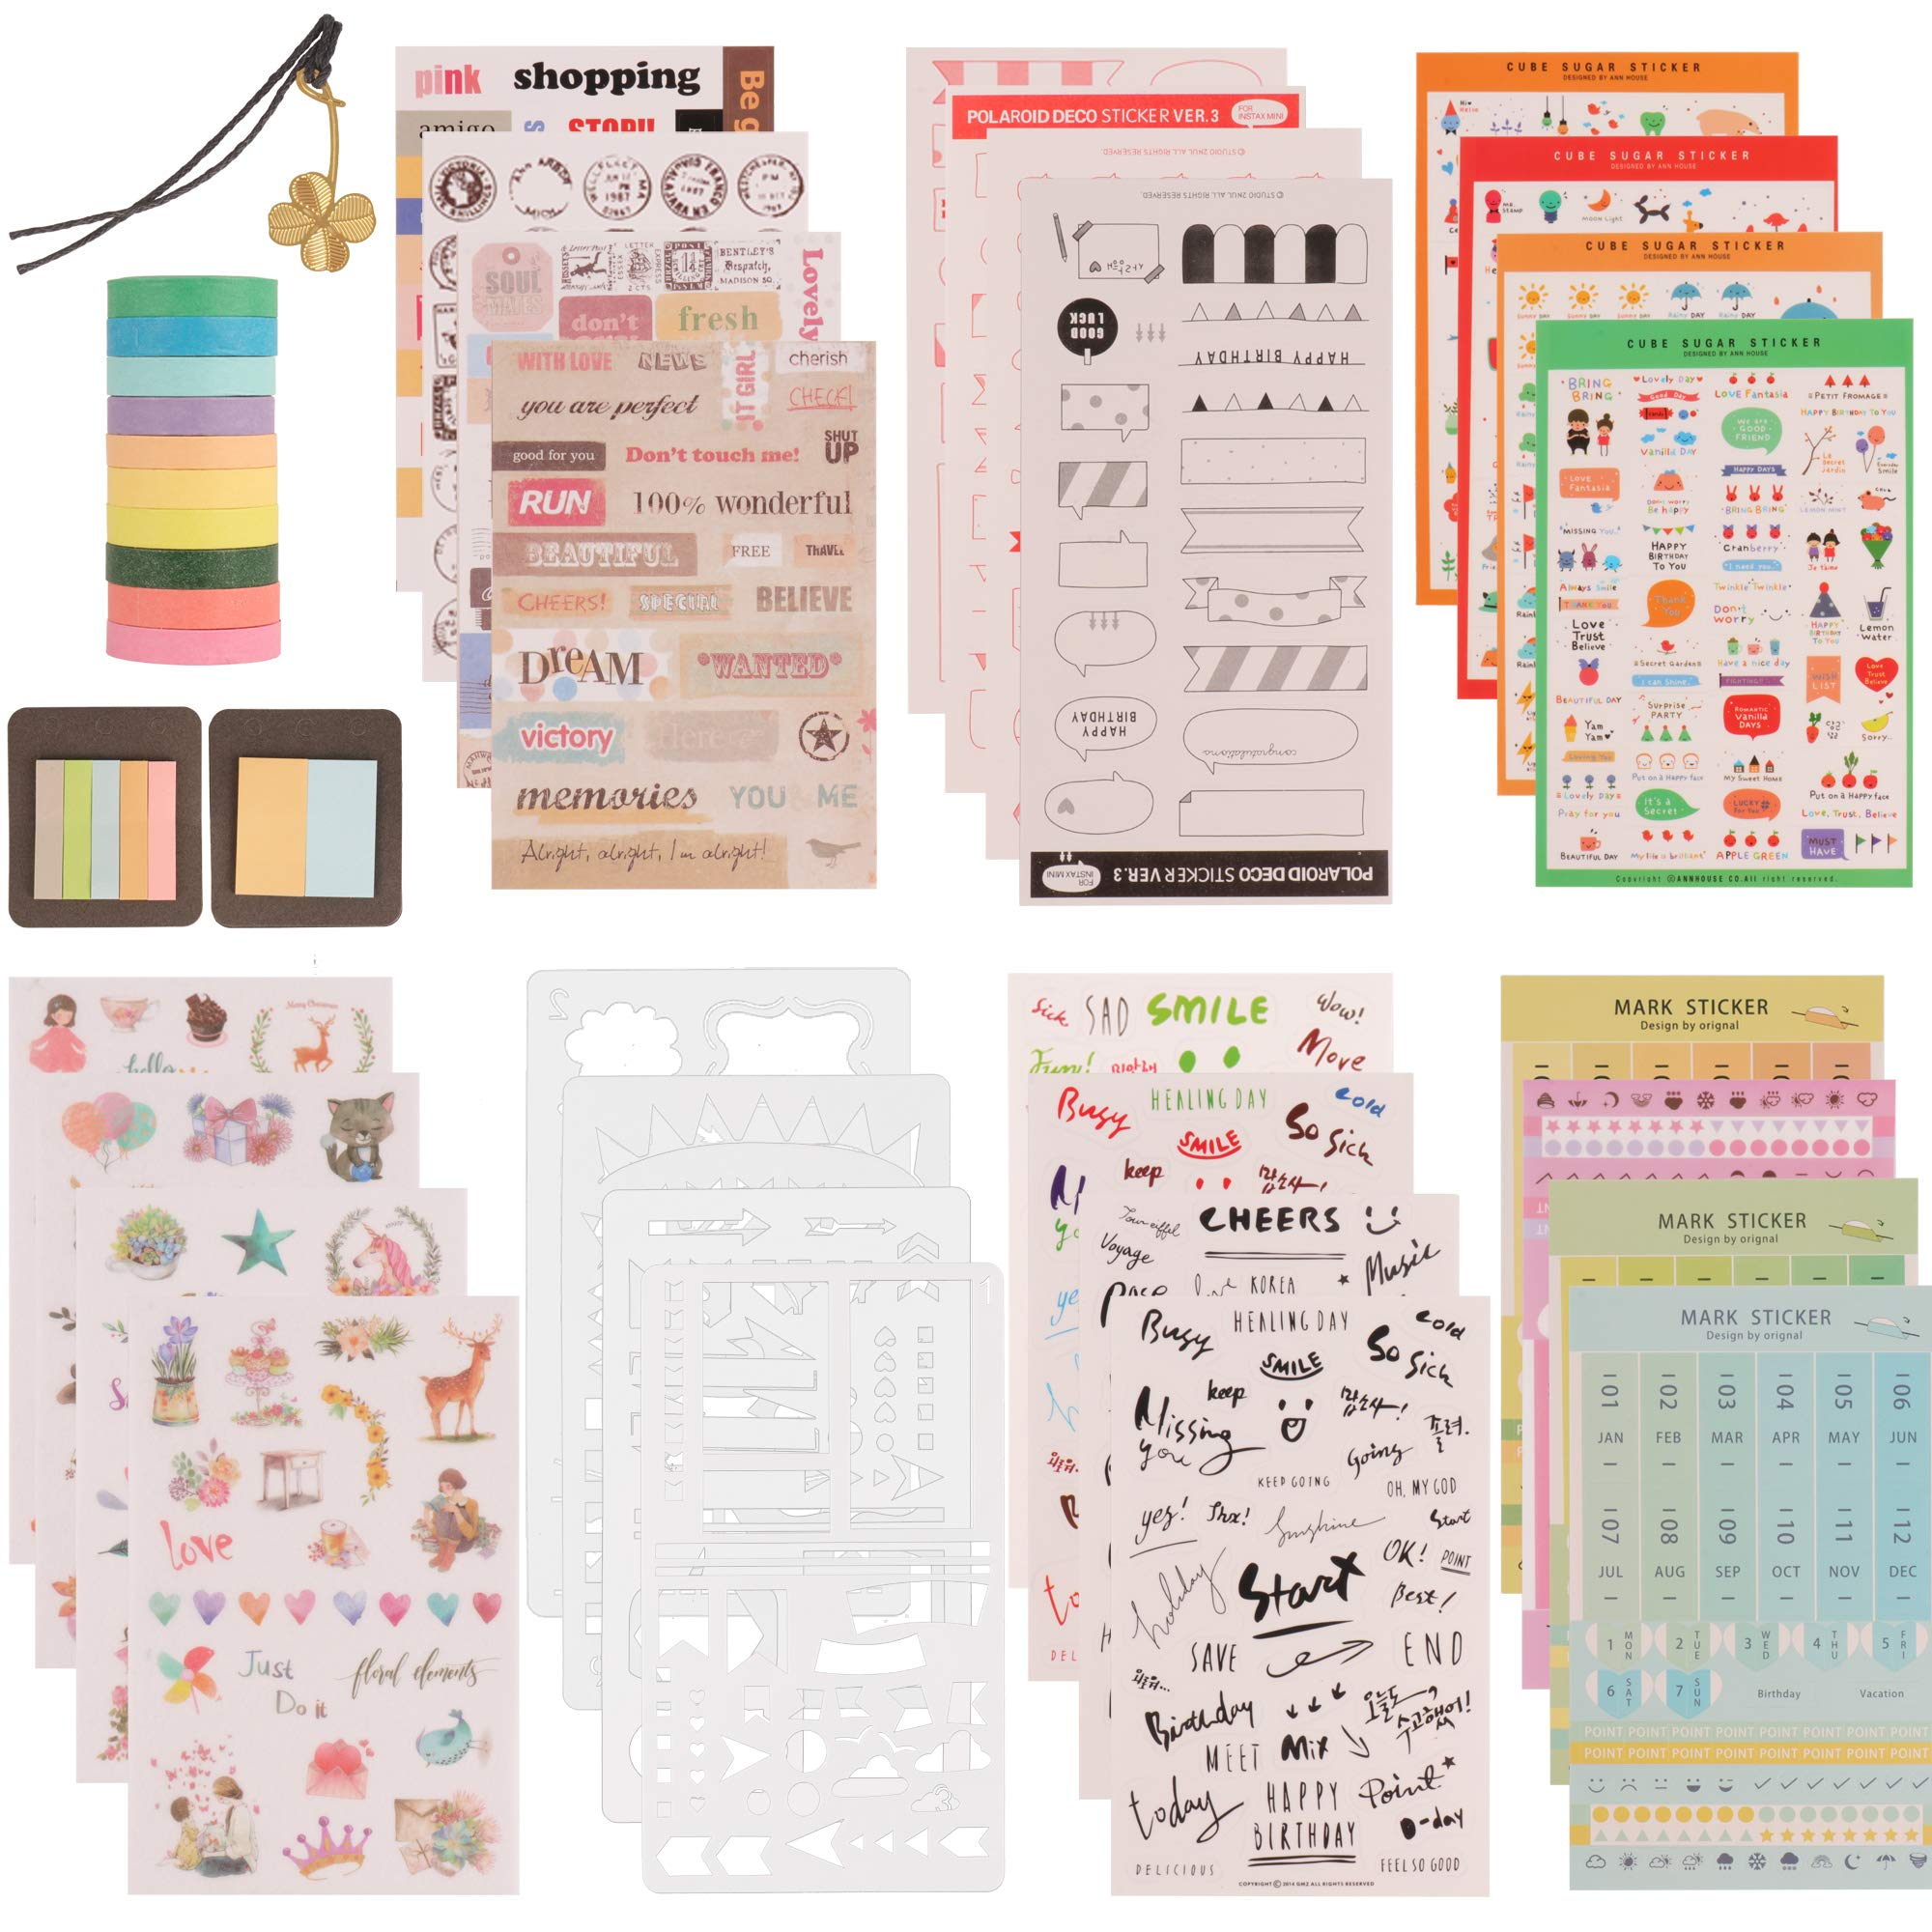 SUBANG 62 Pieces Journal Supplies Kit Include 39 Sheets Planner Stickers, 10 Stencil Sheets, 2 Booklet of Sticky Notes, 10 Thin Washi Tape Rolls,1 Bookmark - Perfect to Make Planners and Organizers by SUBANG